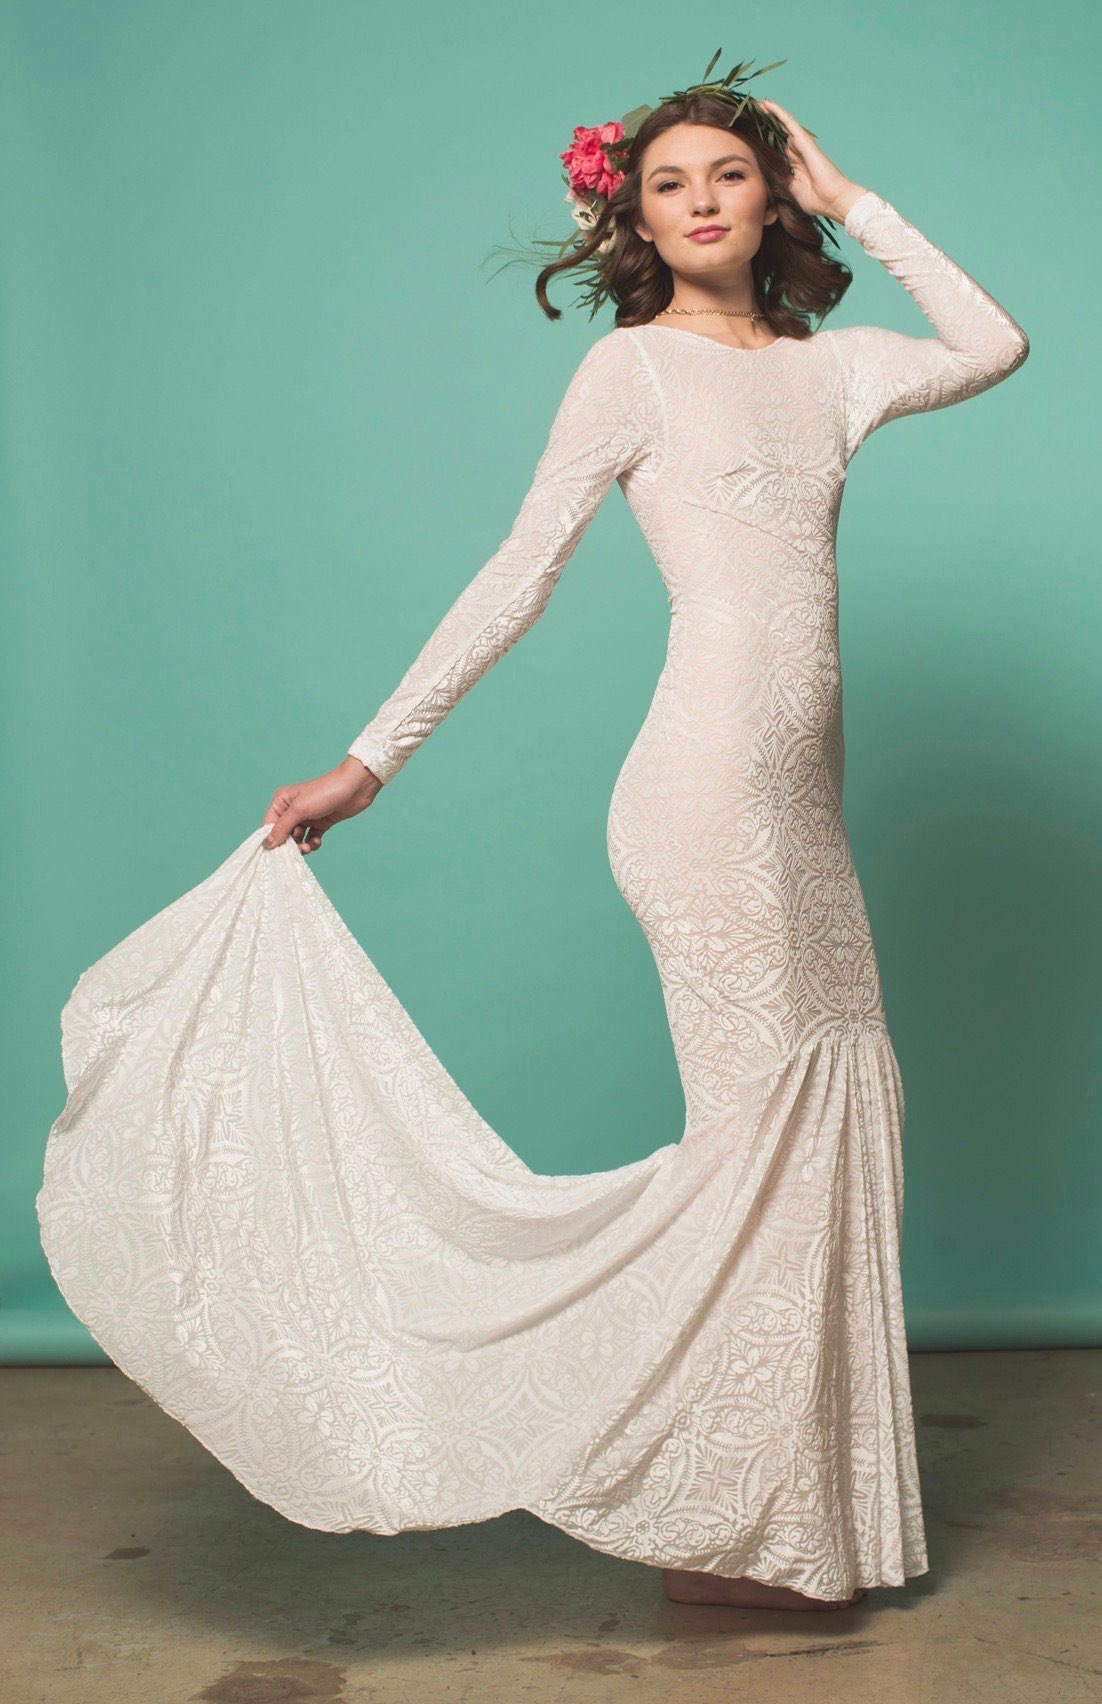 Boho Wedding Dress Wedding Dress Long Sleeved Wedding Dress